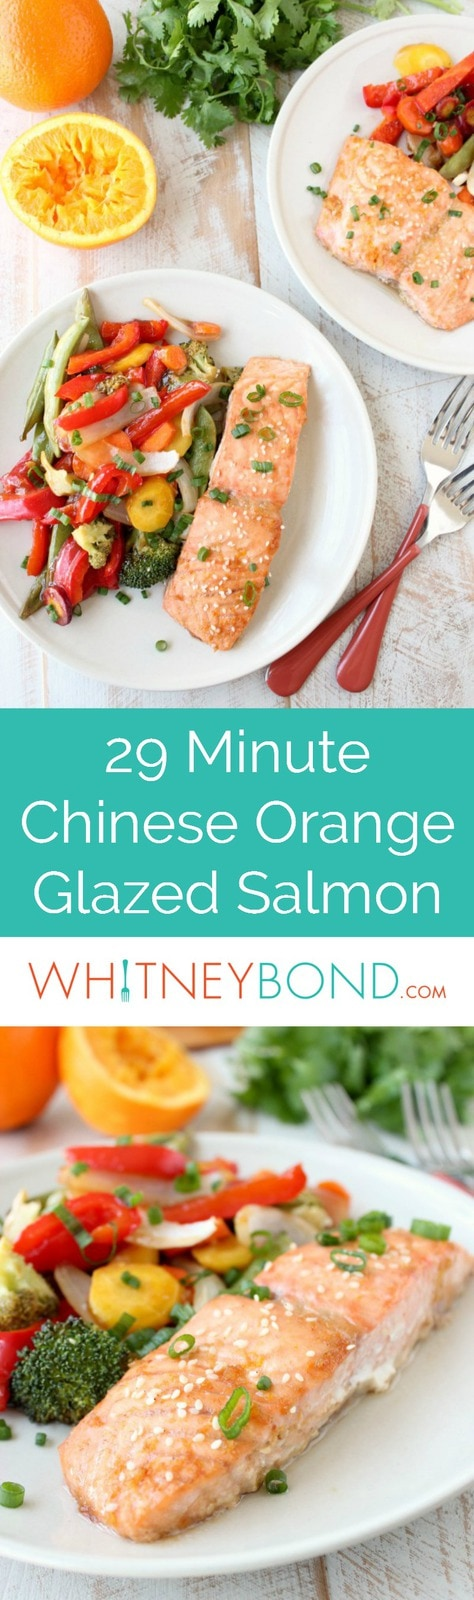 An easy Chinese orange sauce is prepared & brushed over Orange Glazed Salmon and colorful vegetables in this healthy, simple, 29 minute foil dinner recipe!